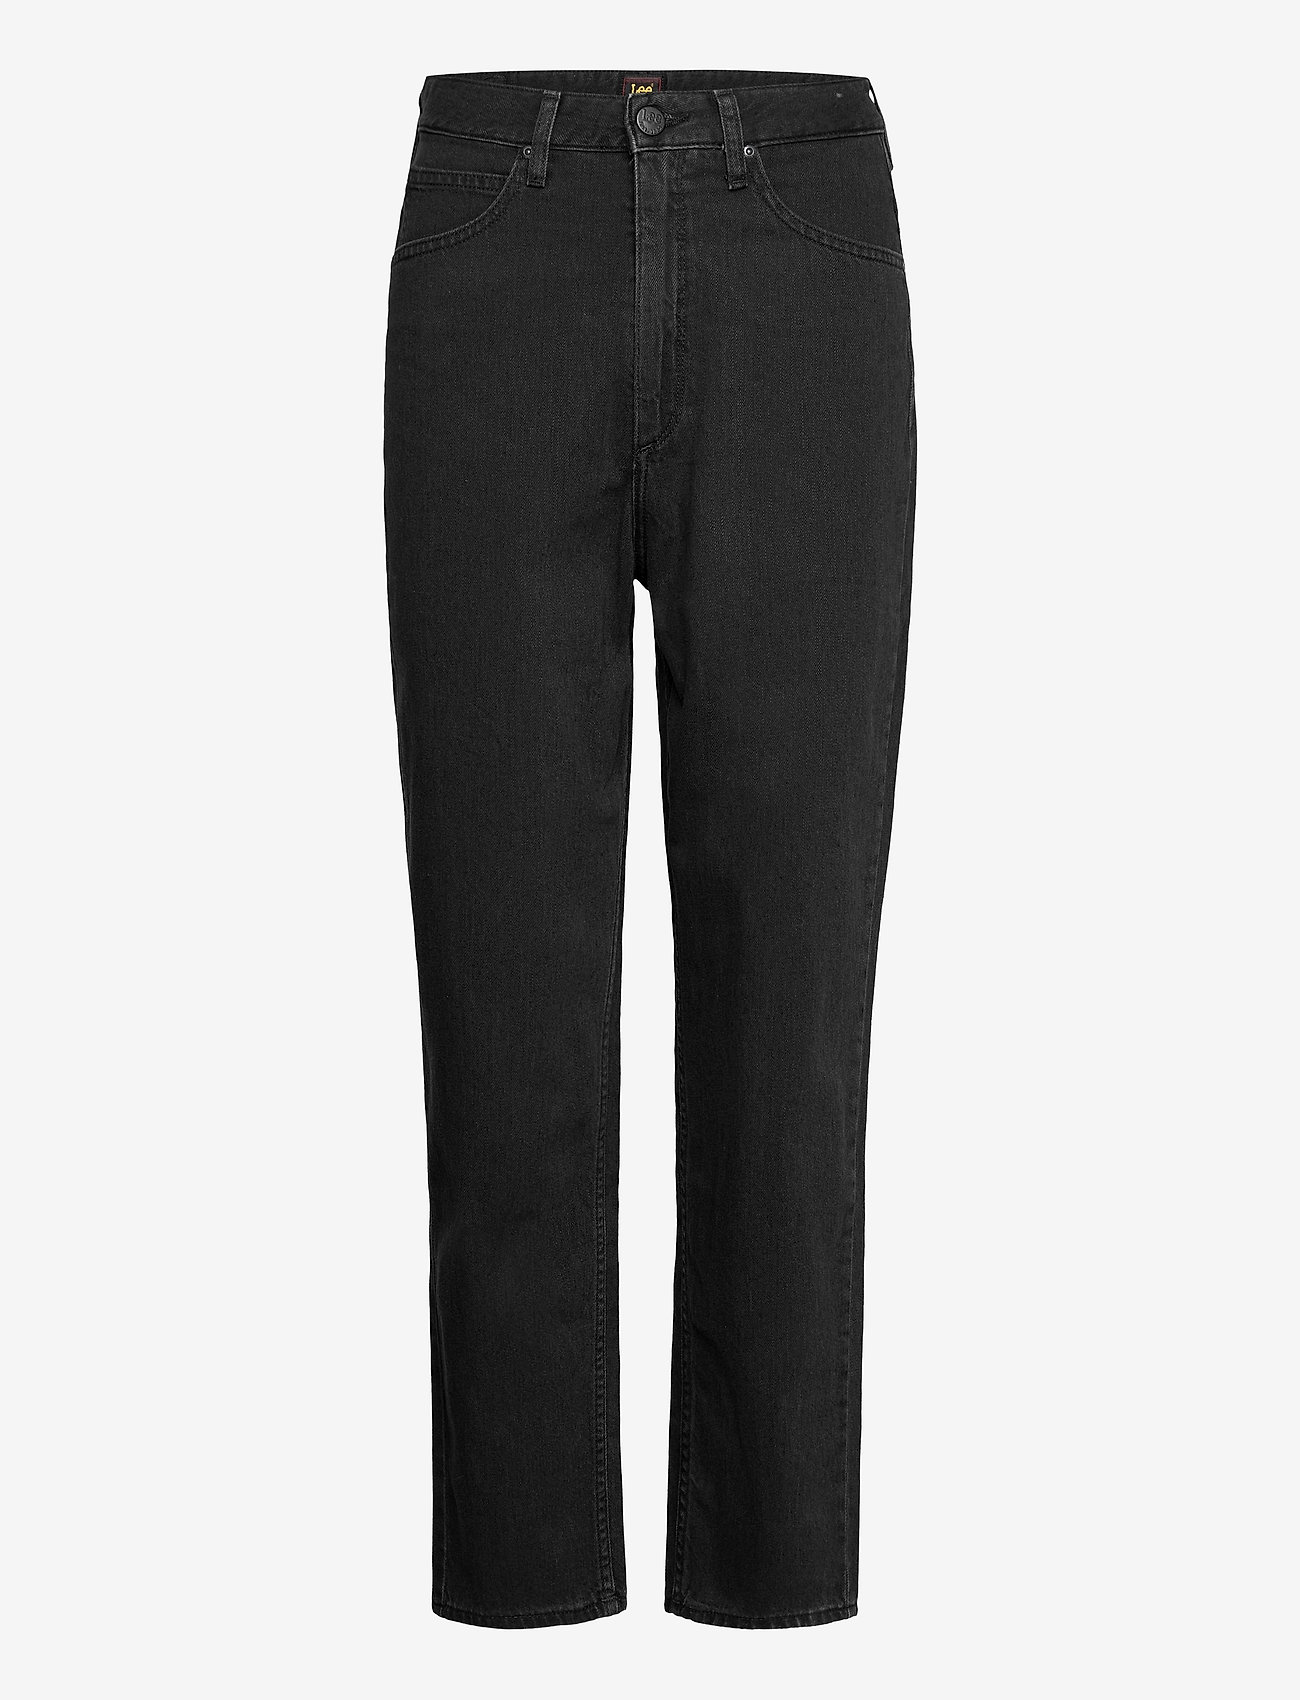 Lee Jeans - STELLA TAPERED - mom jeans - black duns - 0